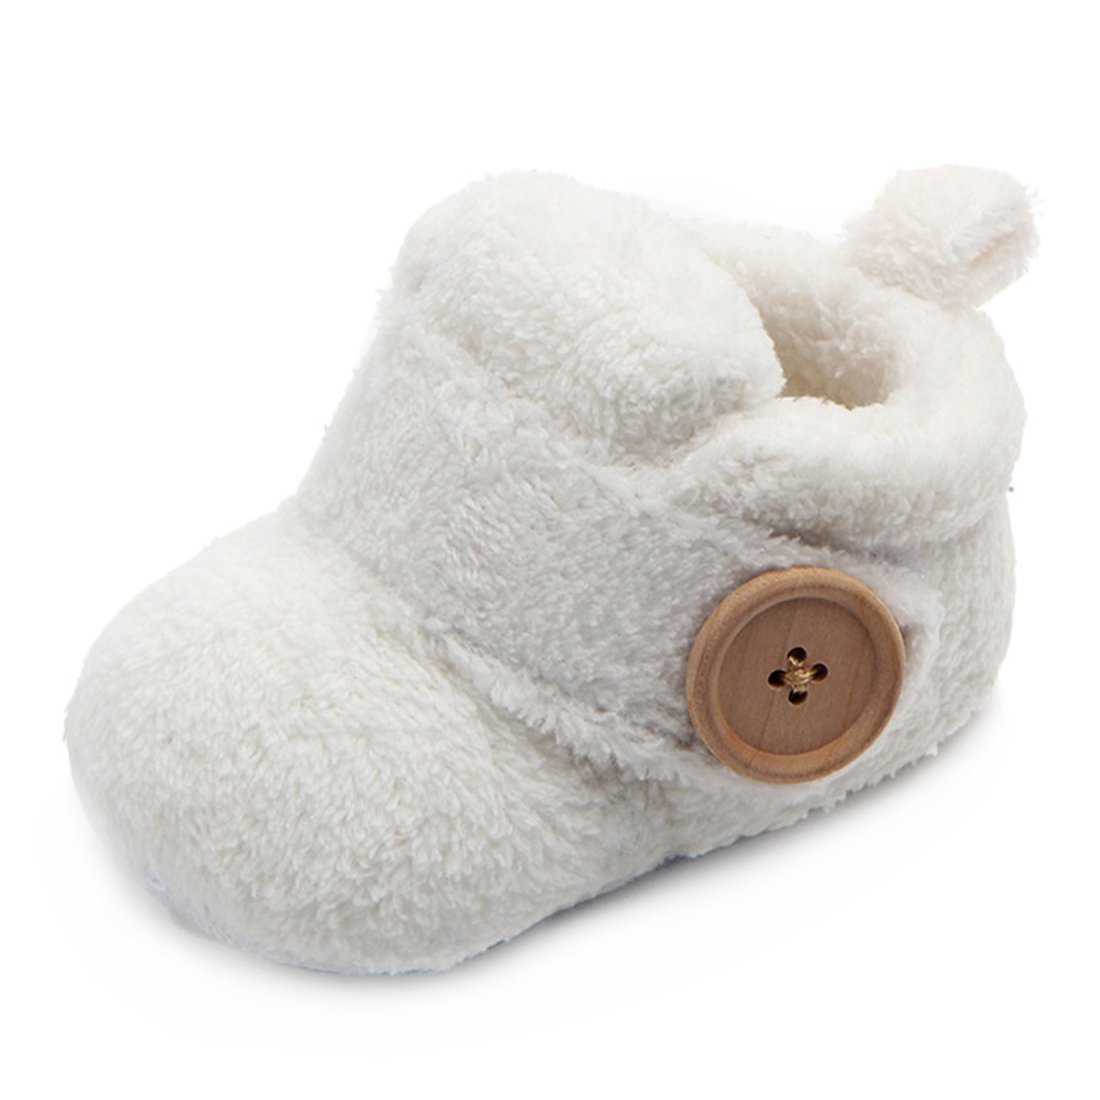 Beeliss Baby Boots Plush Warm Shoes (0-6 Months, White)